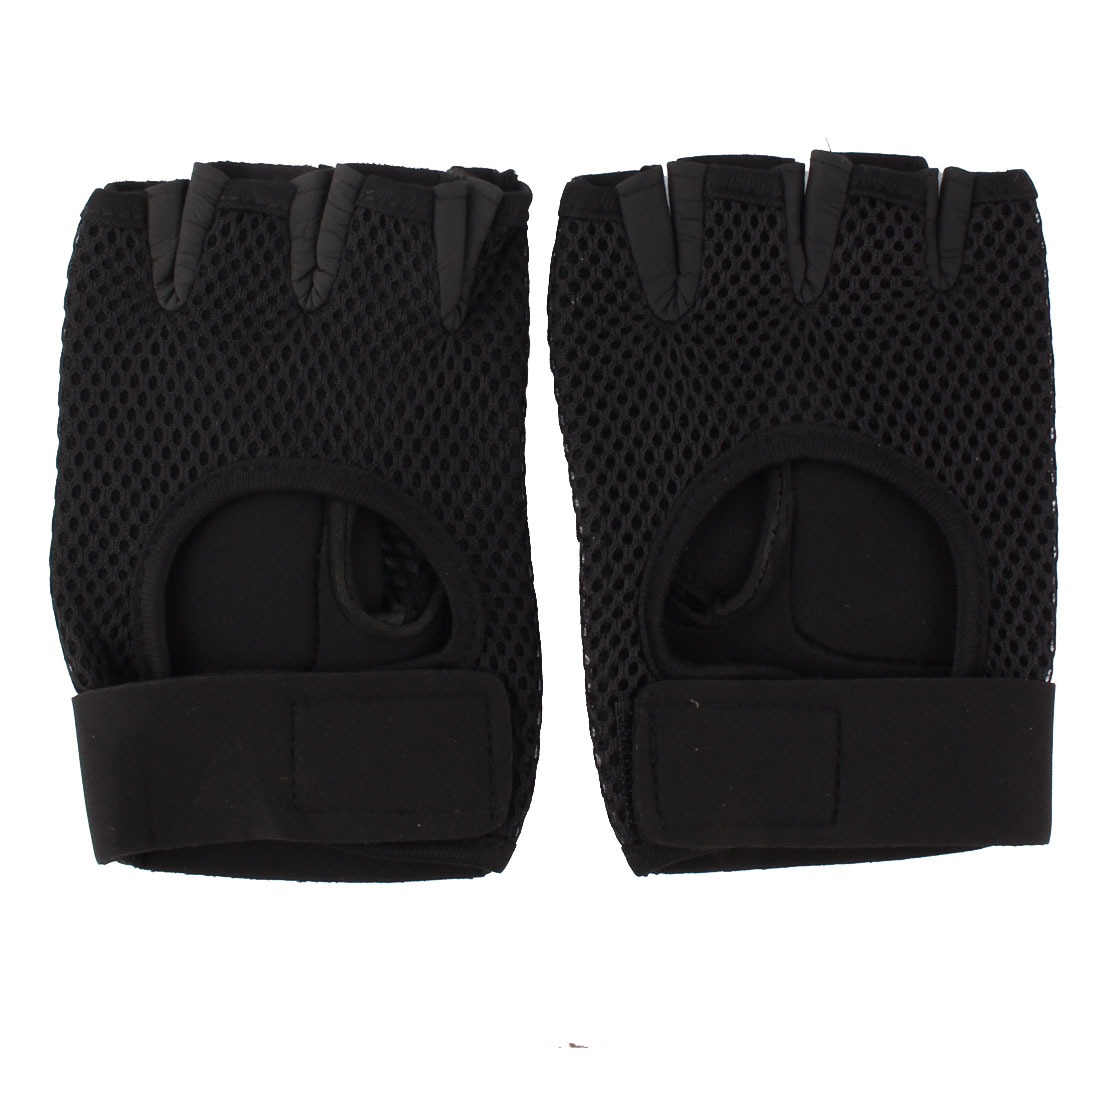 Outdoor Sports Cycling Mesh Half Finger Gloves Hand Protector Black Pair